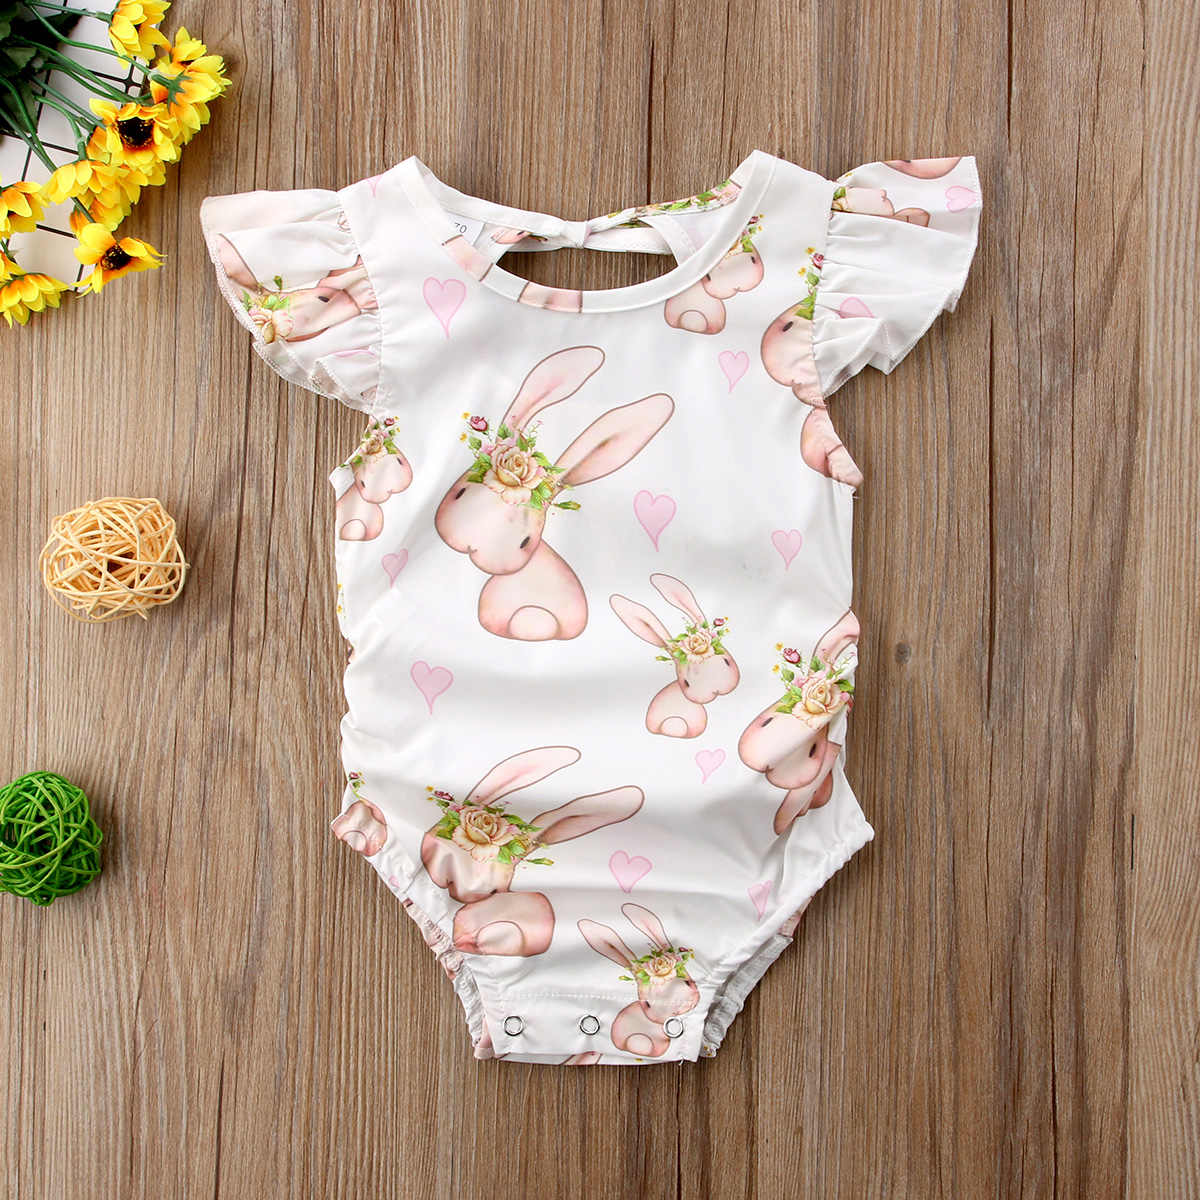 29bc81a92d1 Detail Feedback Questions about Newborn Baby Girls Bunny Floral Bodysuit  Kids Summer O Neck Jumpsuit Outfit Infant Flying Sleeve Animal Printed  Bodysuits on ...